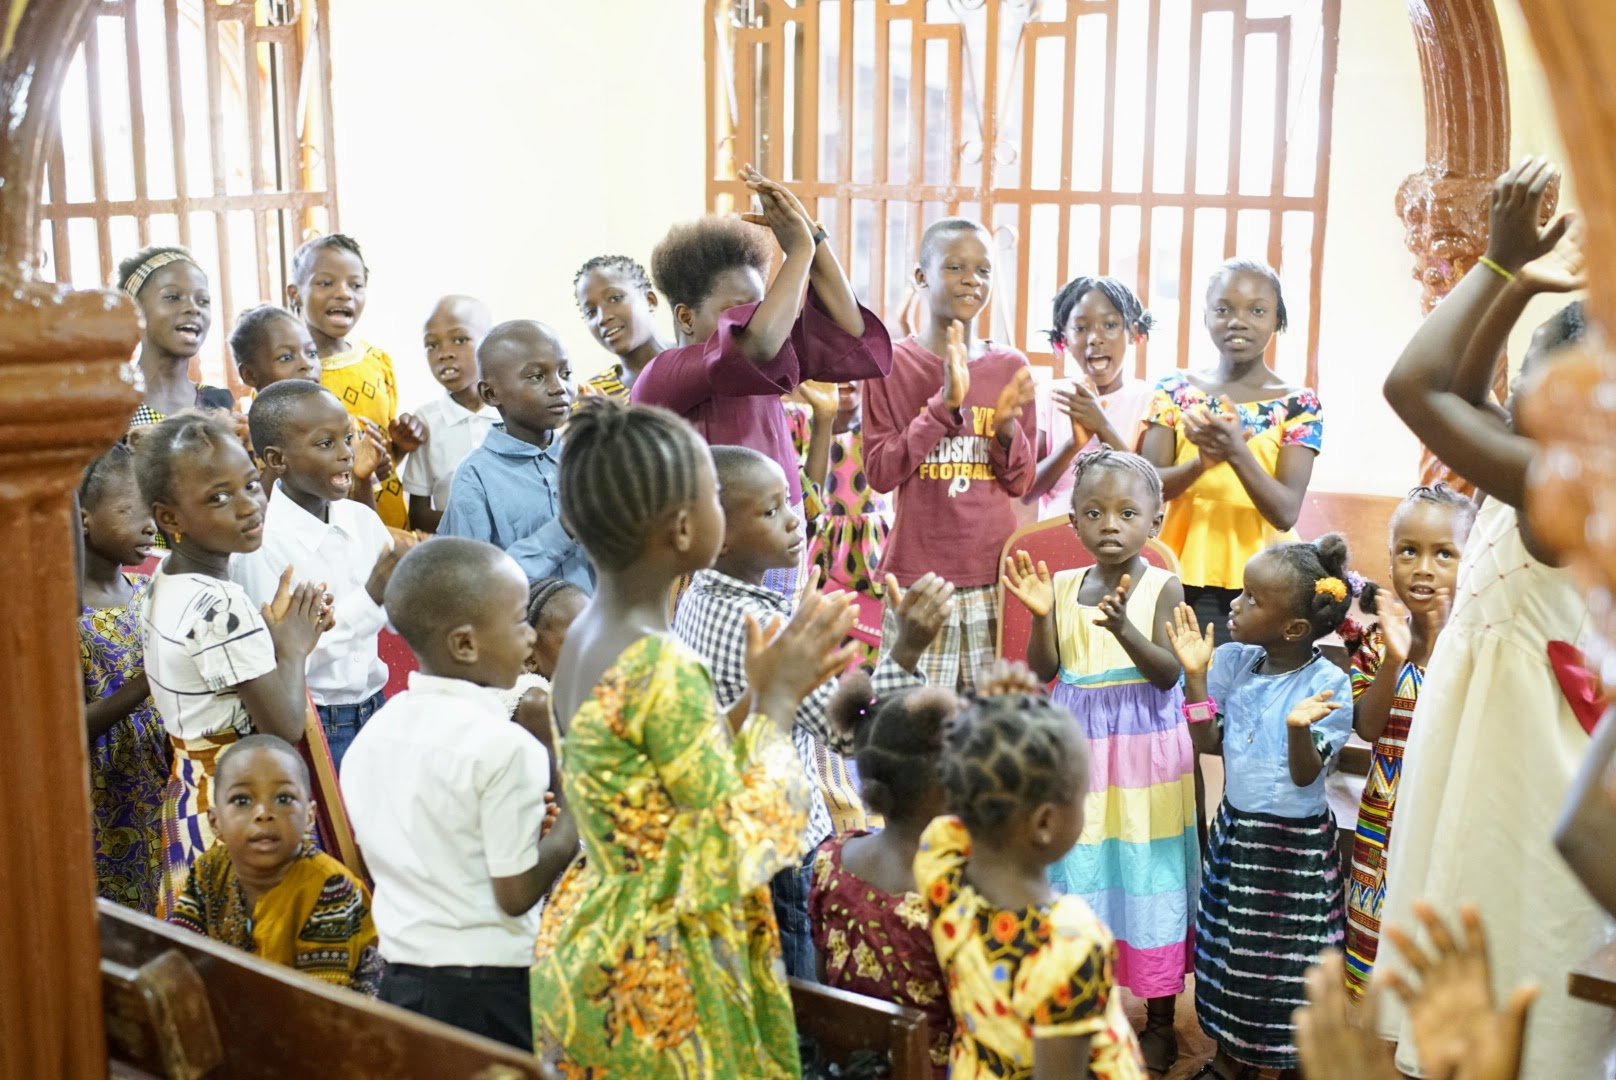 A group of Primary children sing and participate during Church in Sierra Leone. Sister Jean B. Bingham, Relief Society general president, visited the West African country June 5 through June 16, 2019.